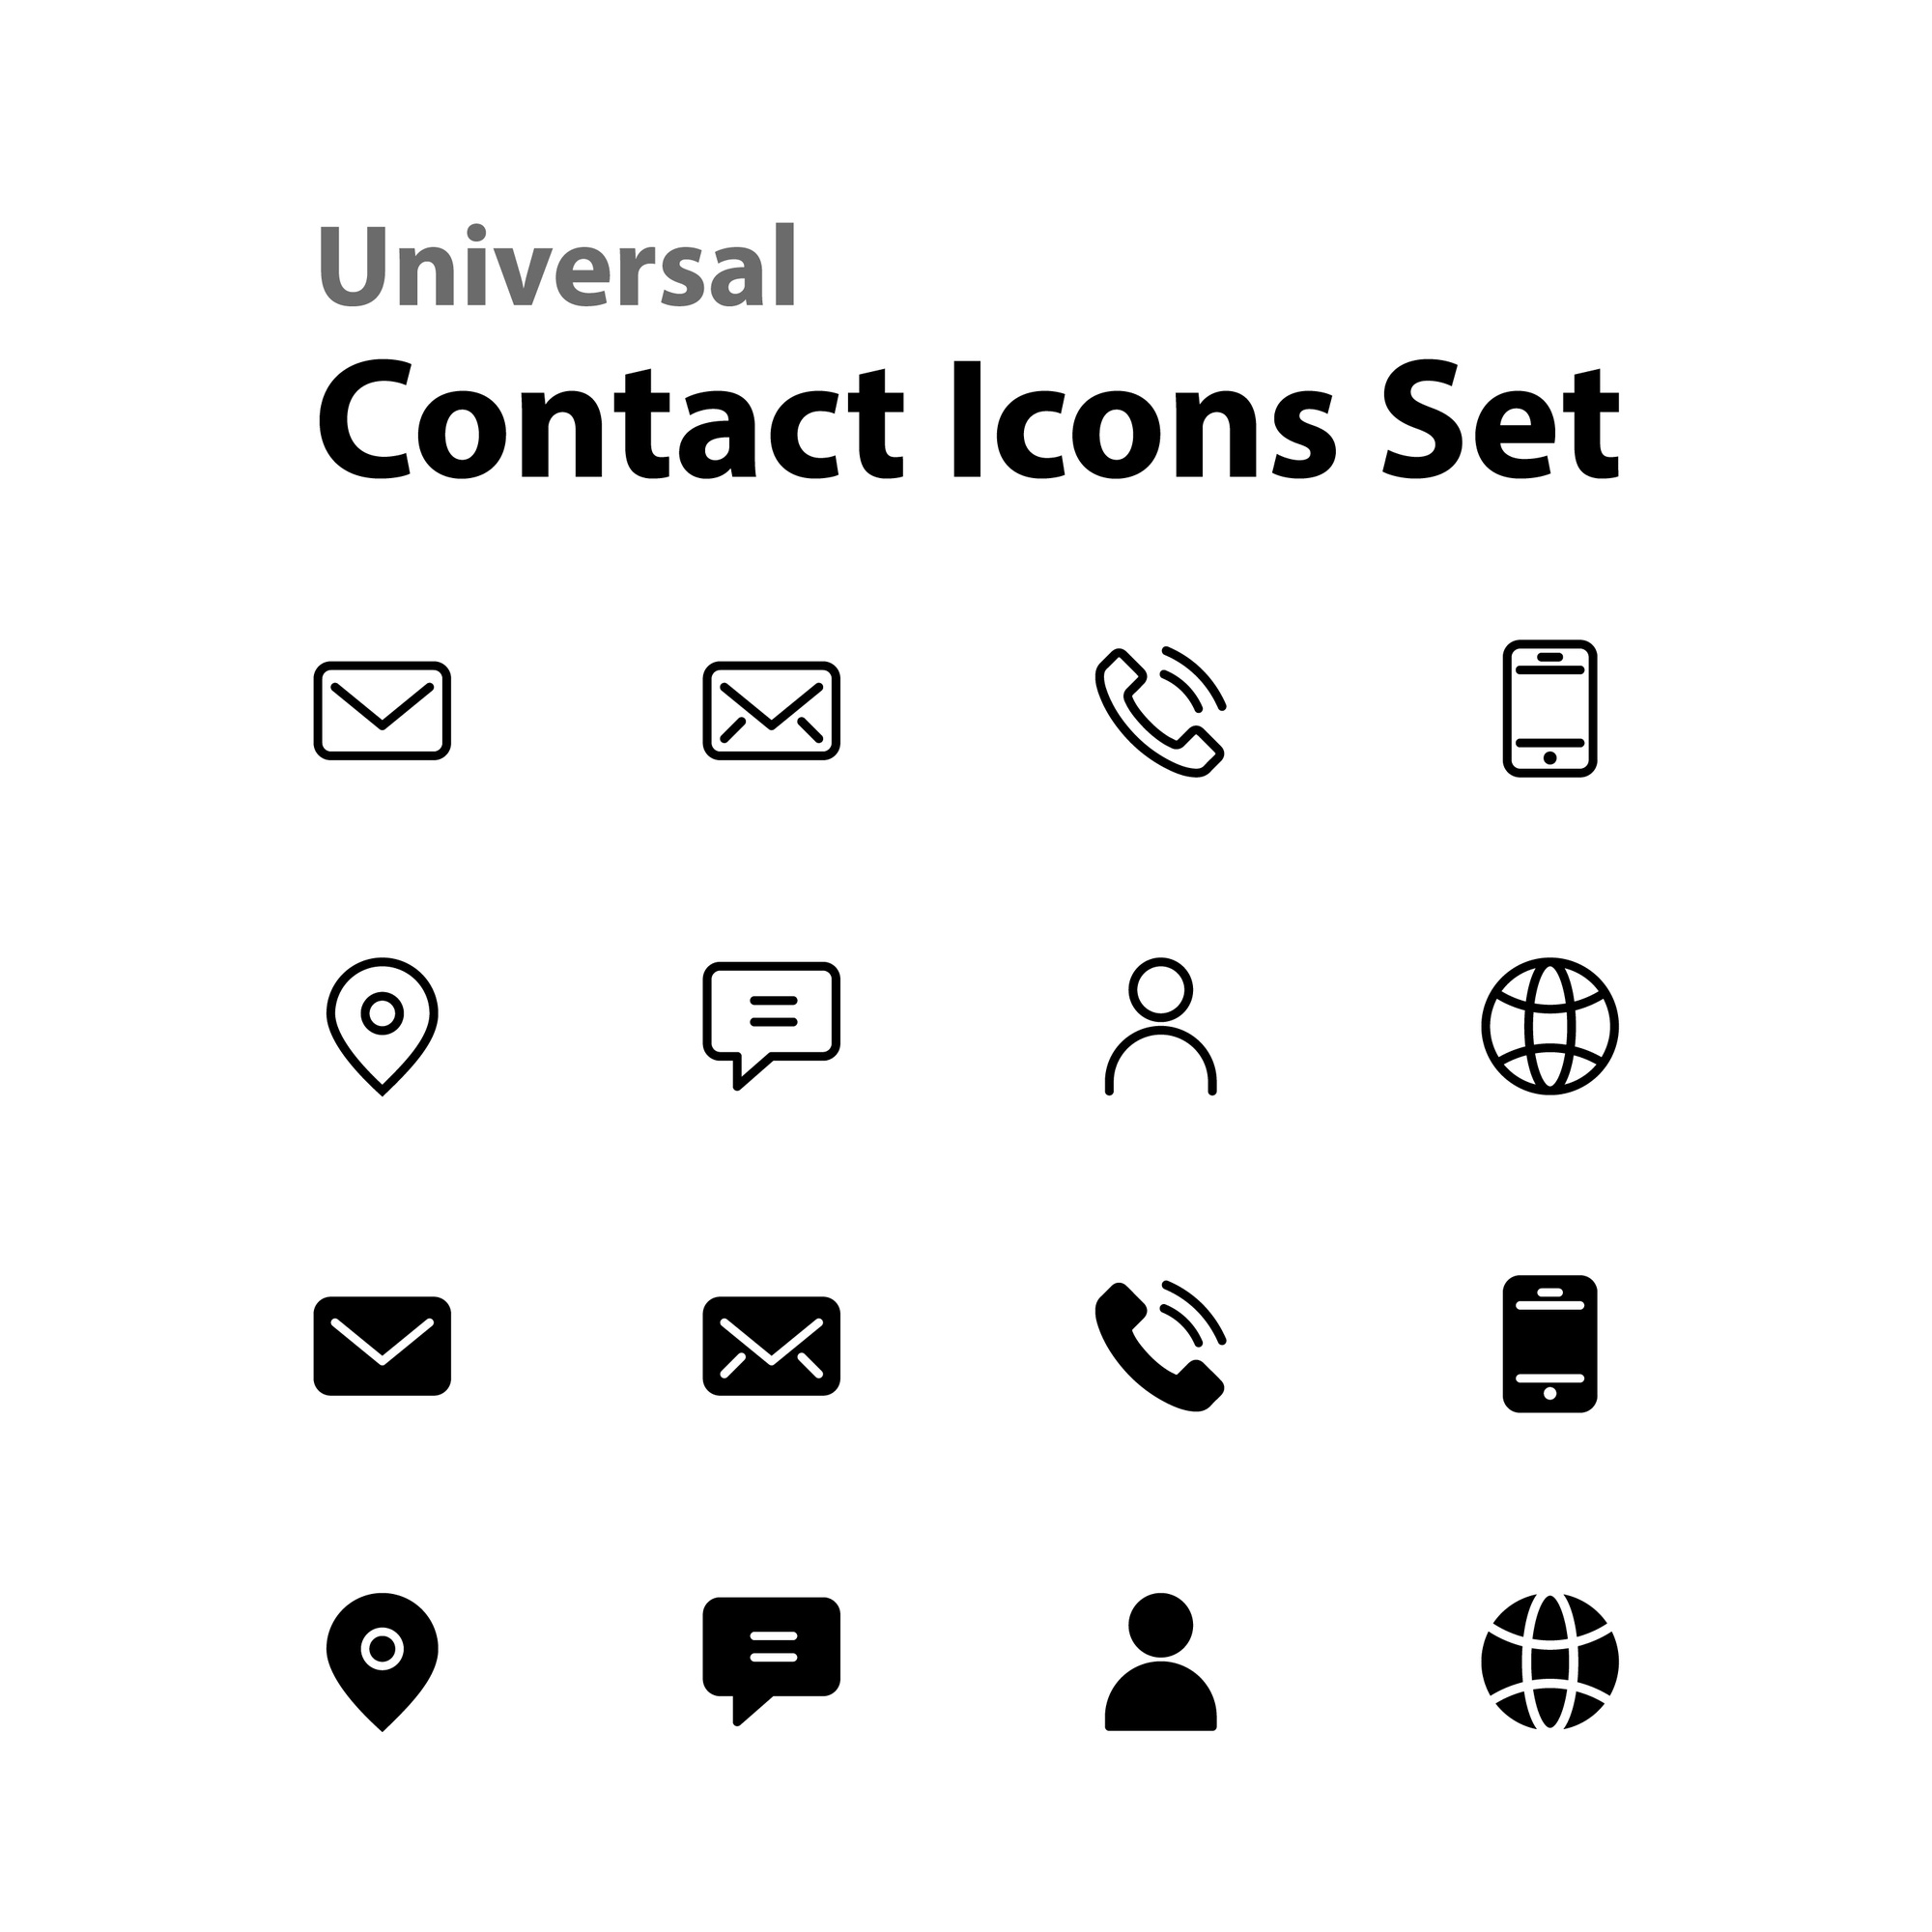 Universal Contact Icons Set